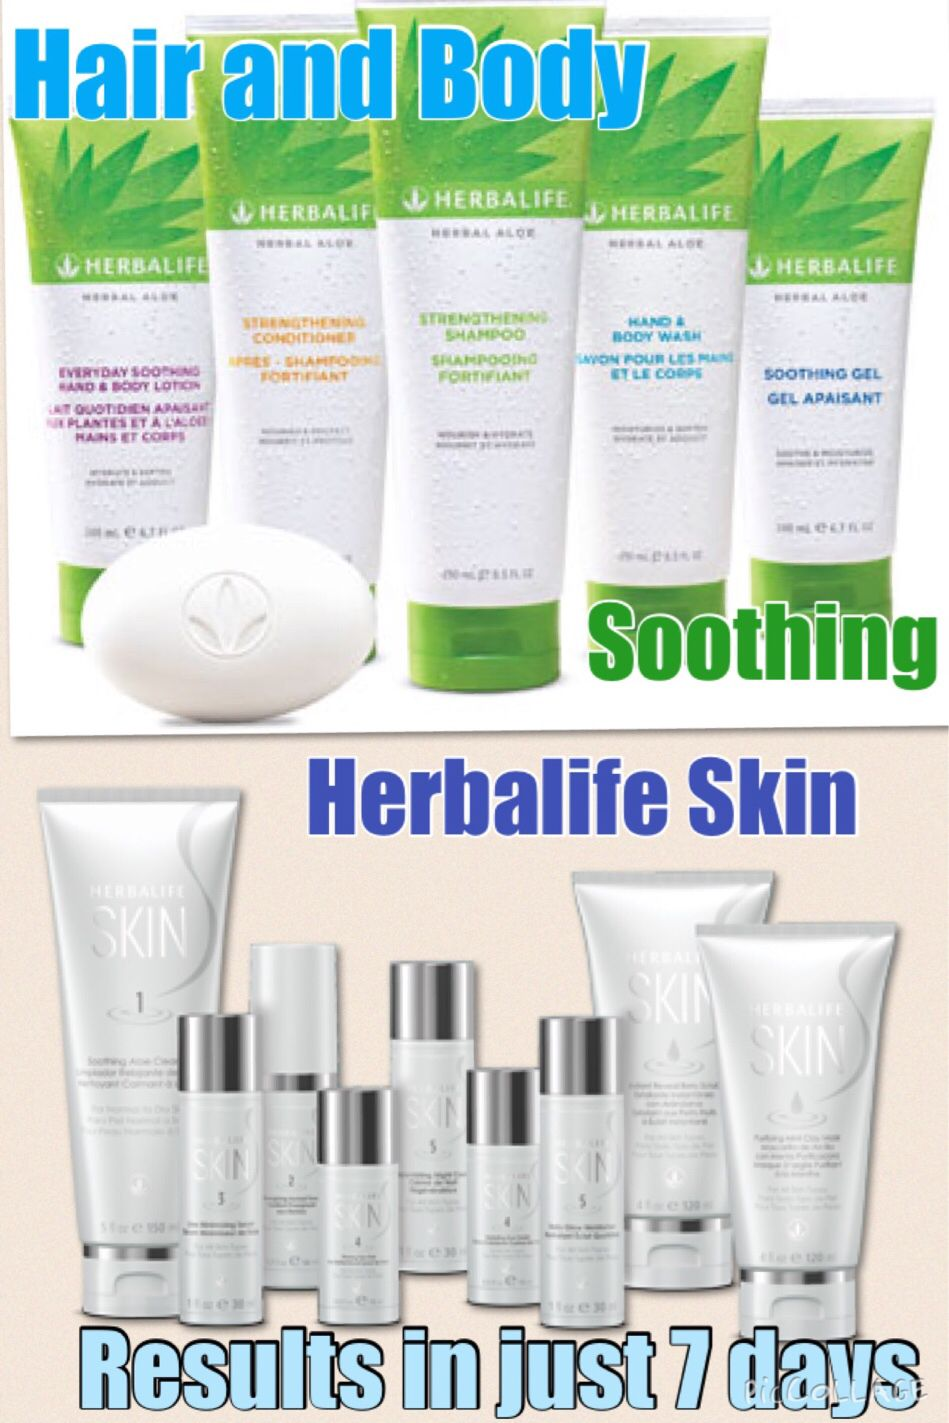 Did You Know That Herbalife Is Not Just Inner Core Nutrition We Also Have Amazing Skin And Hair Ca Herbalife Herbalife Nutrition Herbalife Nutrition Club